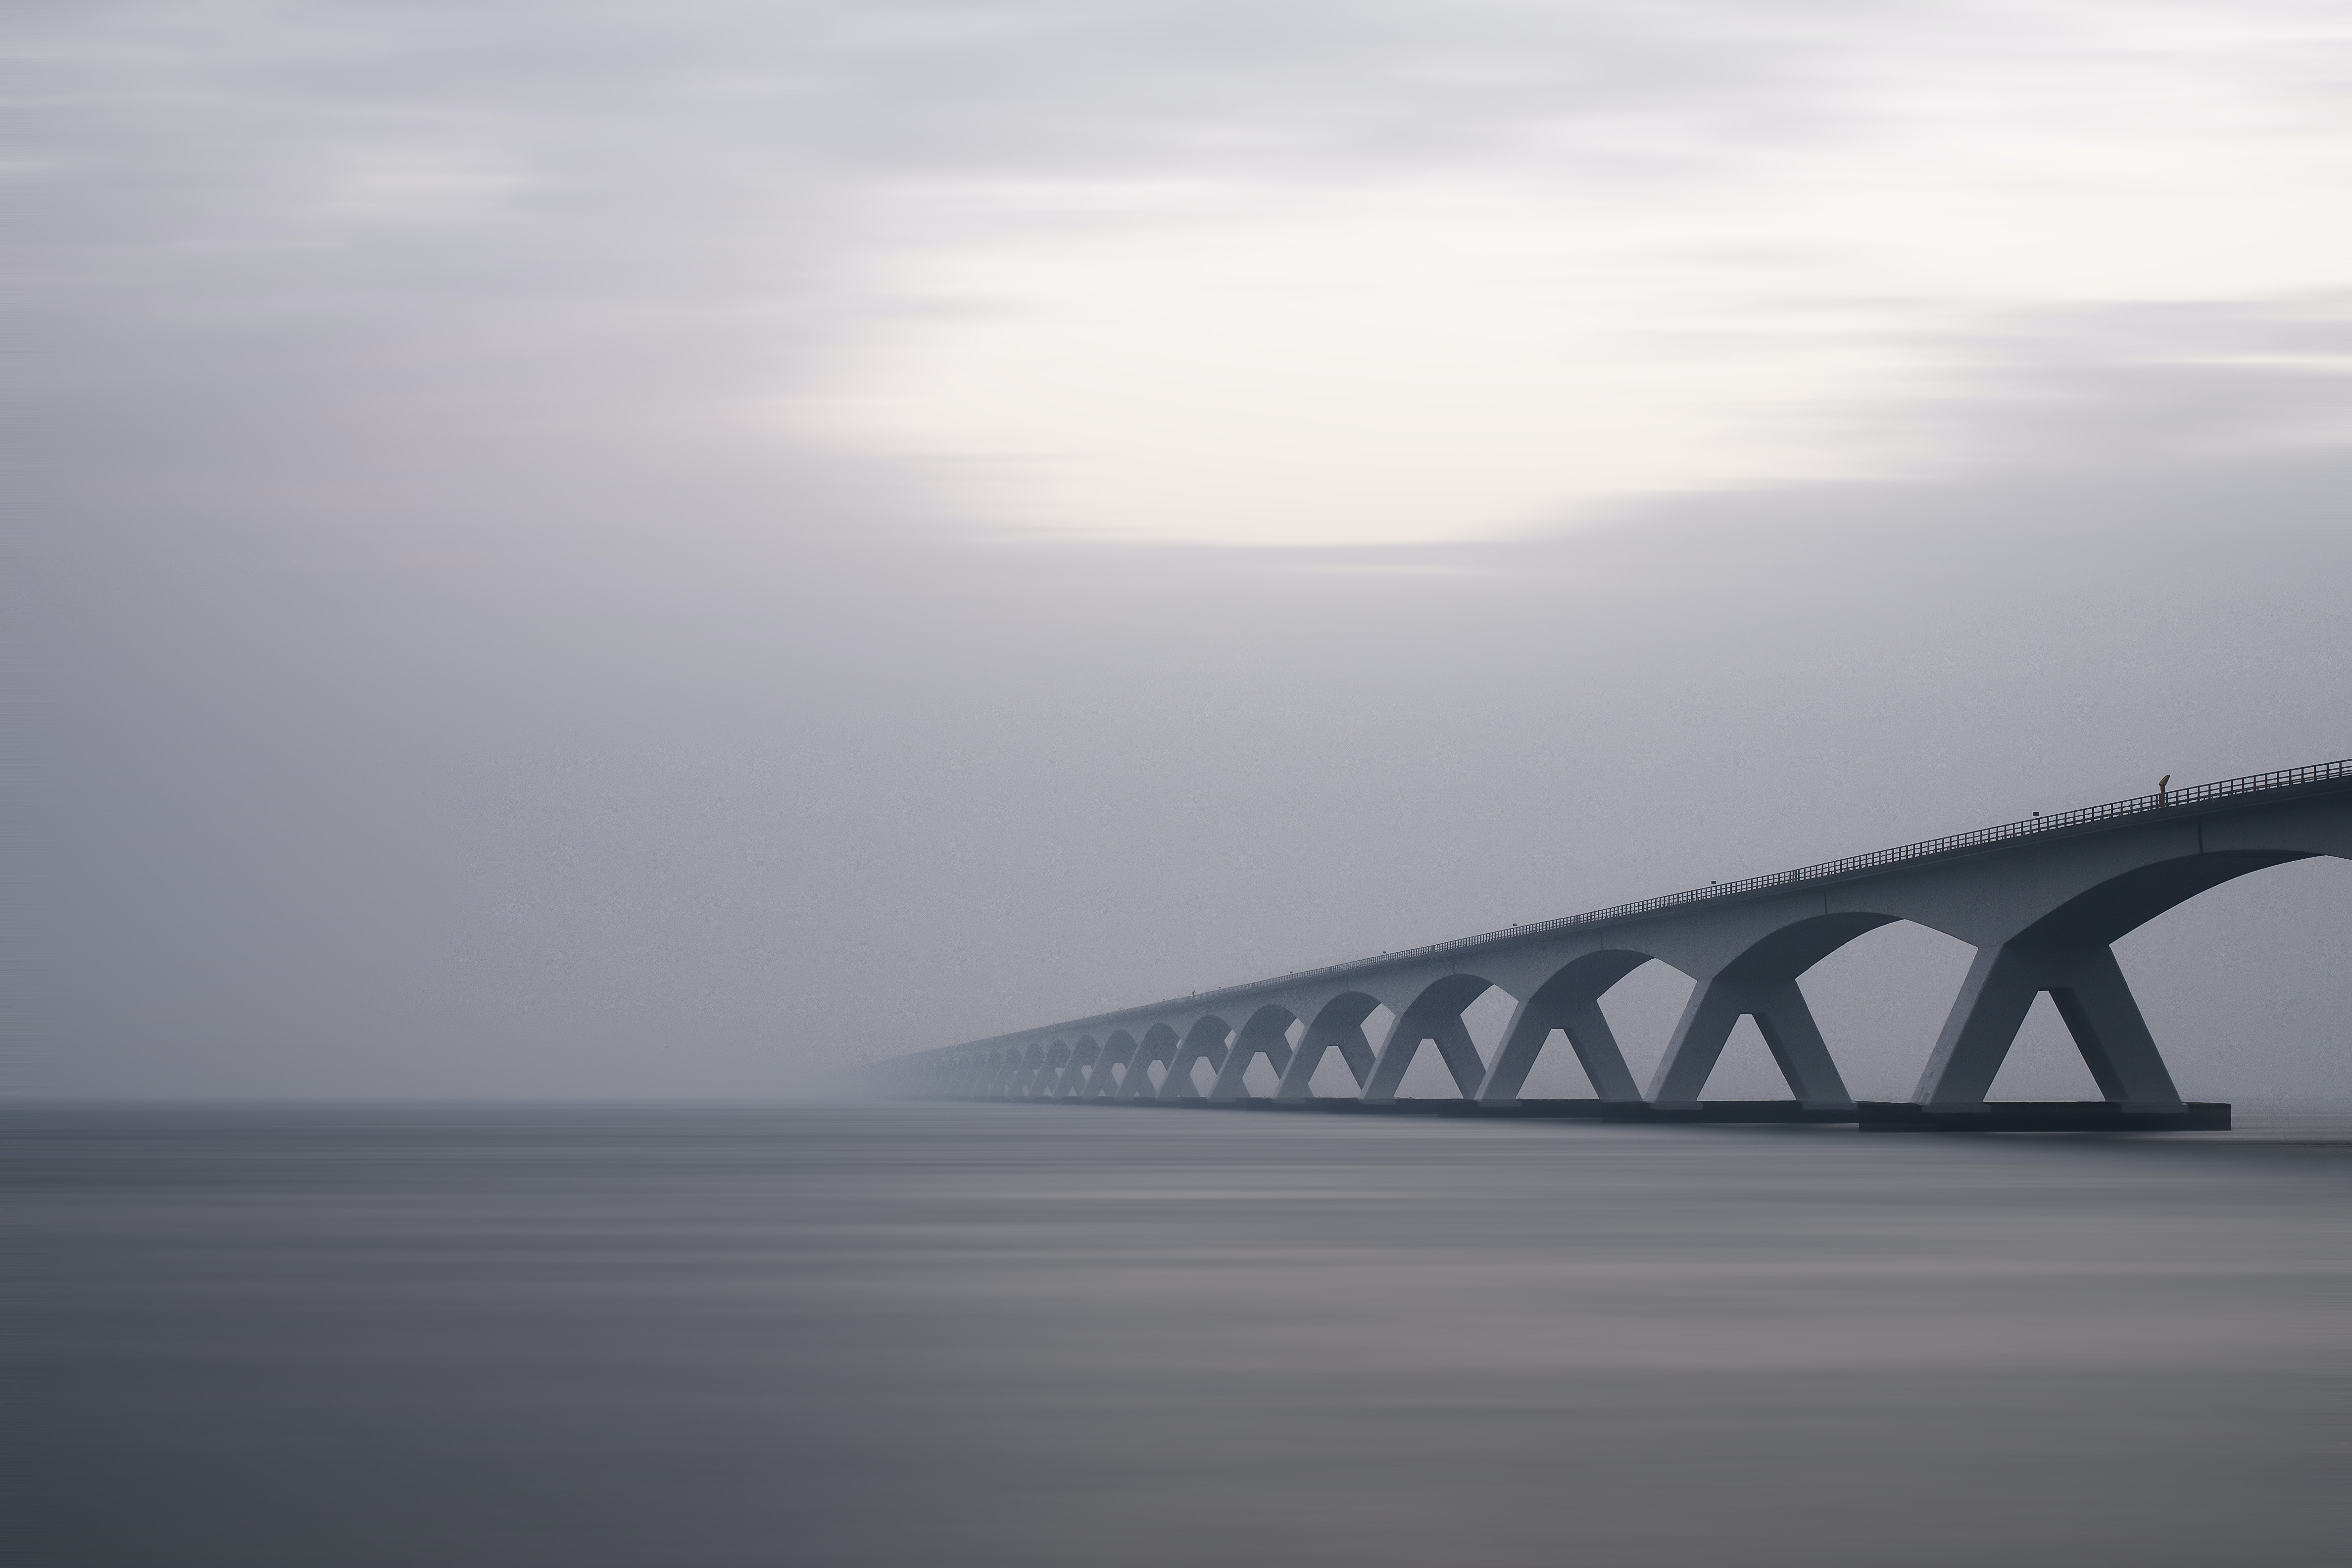 A gray day by a bridge over calm foggy waters